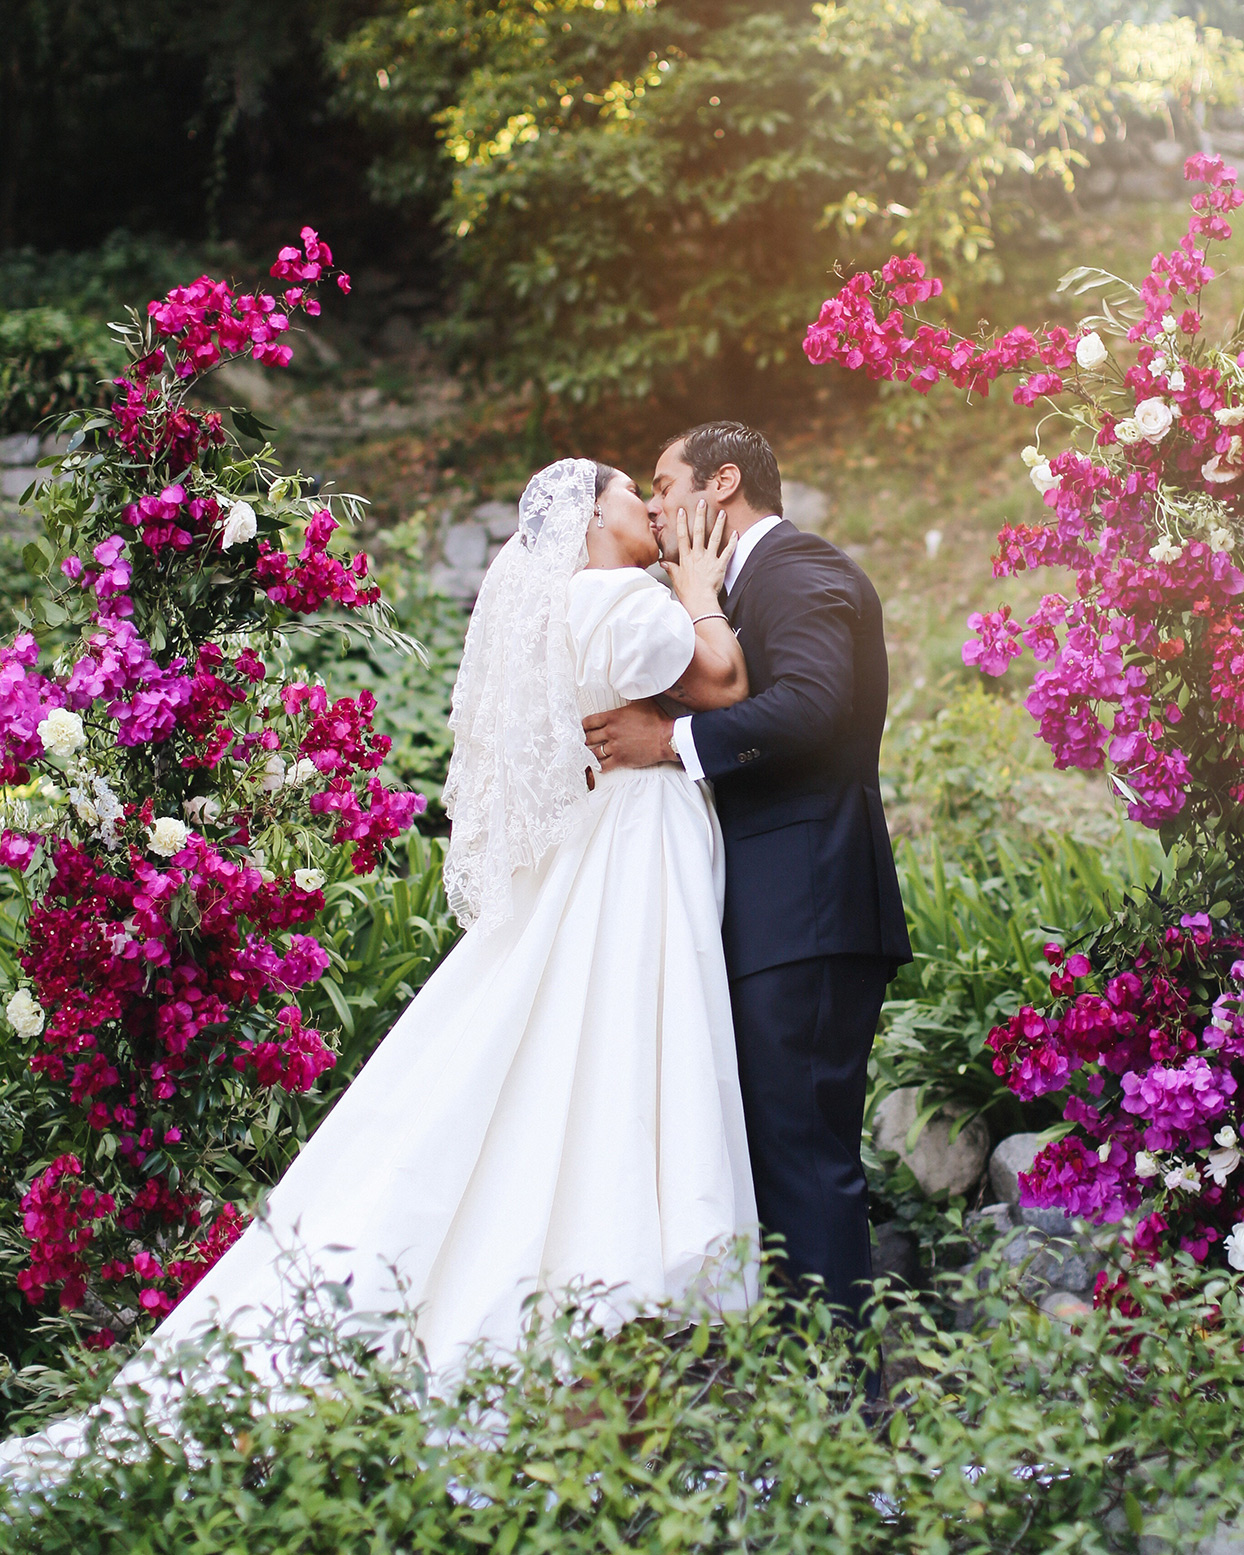 pia davide wedding ceremony kiss amongst fuchsia flowers